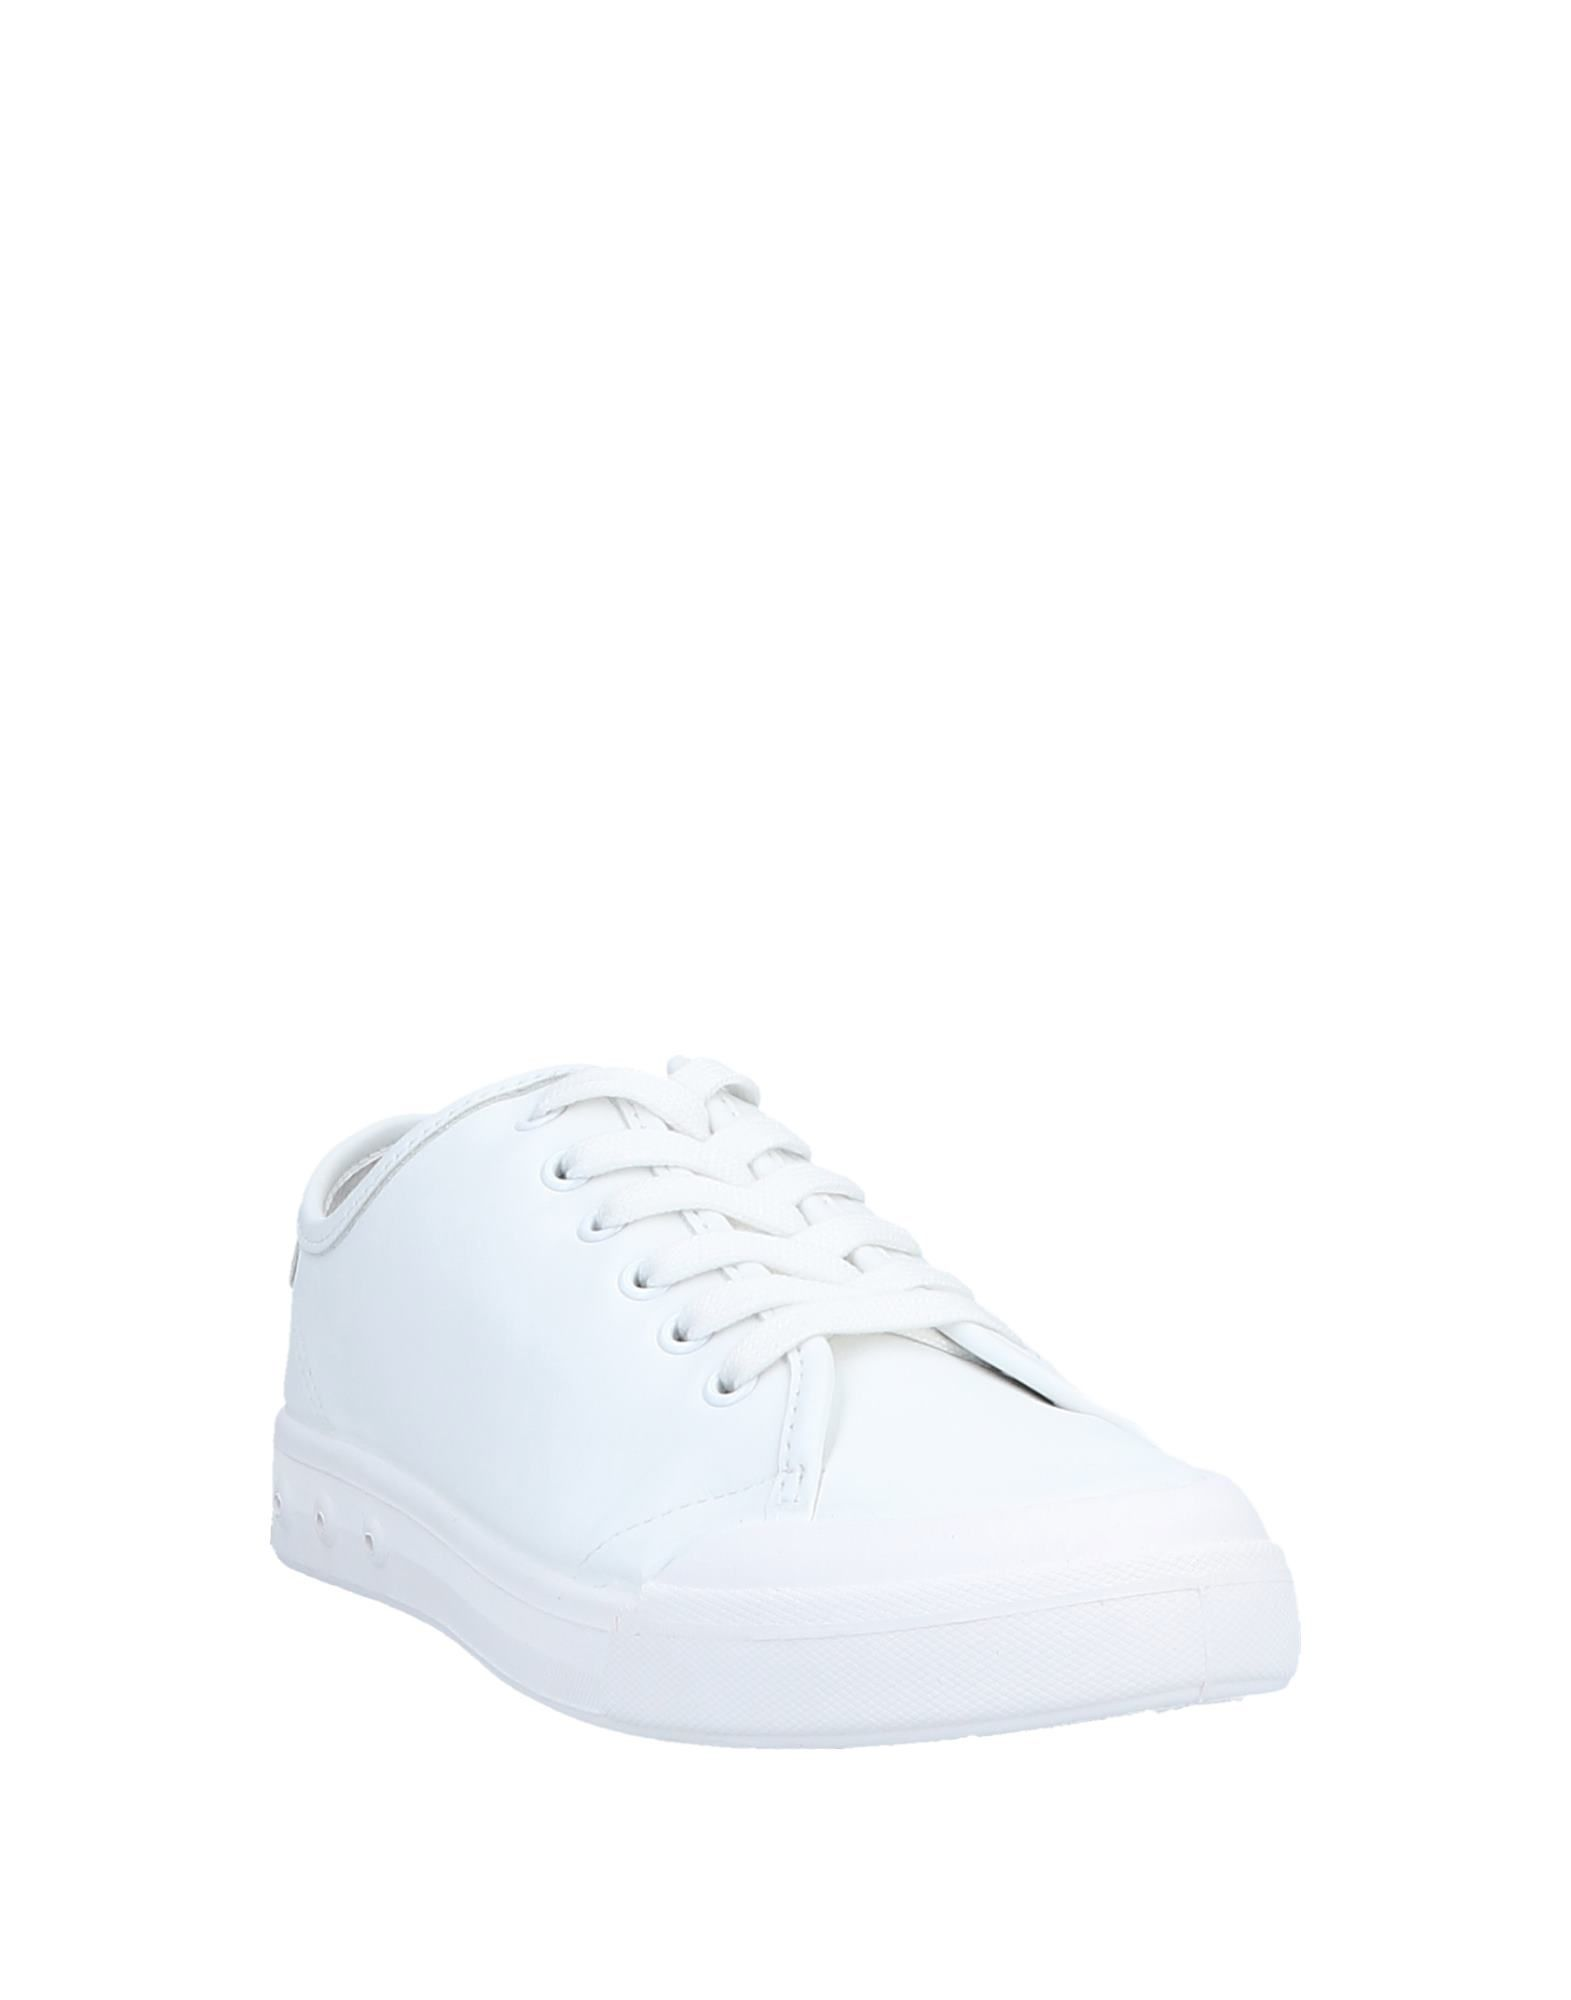 Stilvolle Bone billige Schuhe Rag & Bone Stilvolle Sneakers Damen  11572539NR 84c3d9